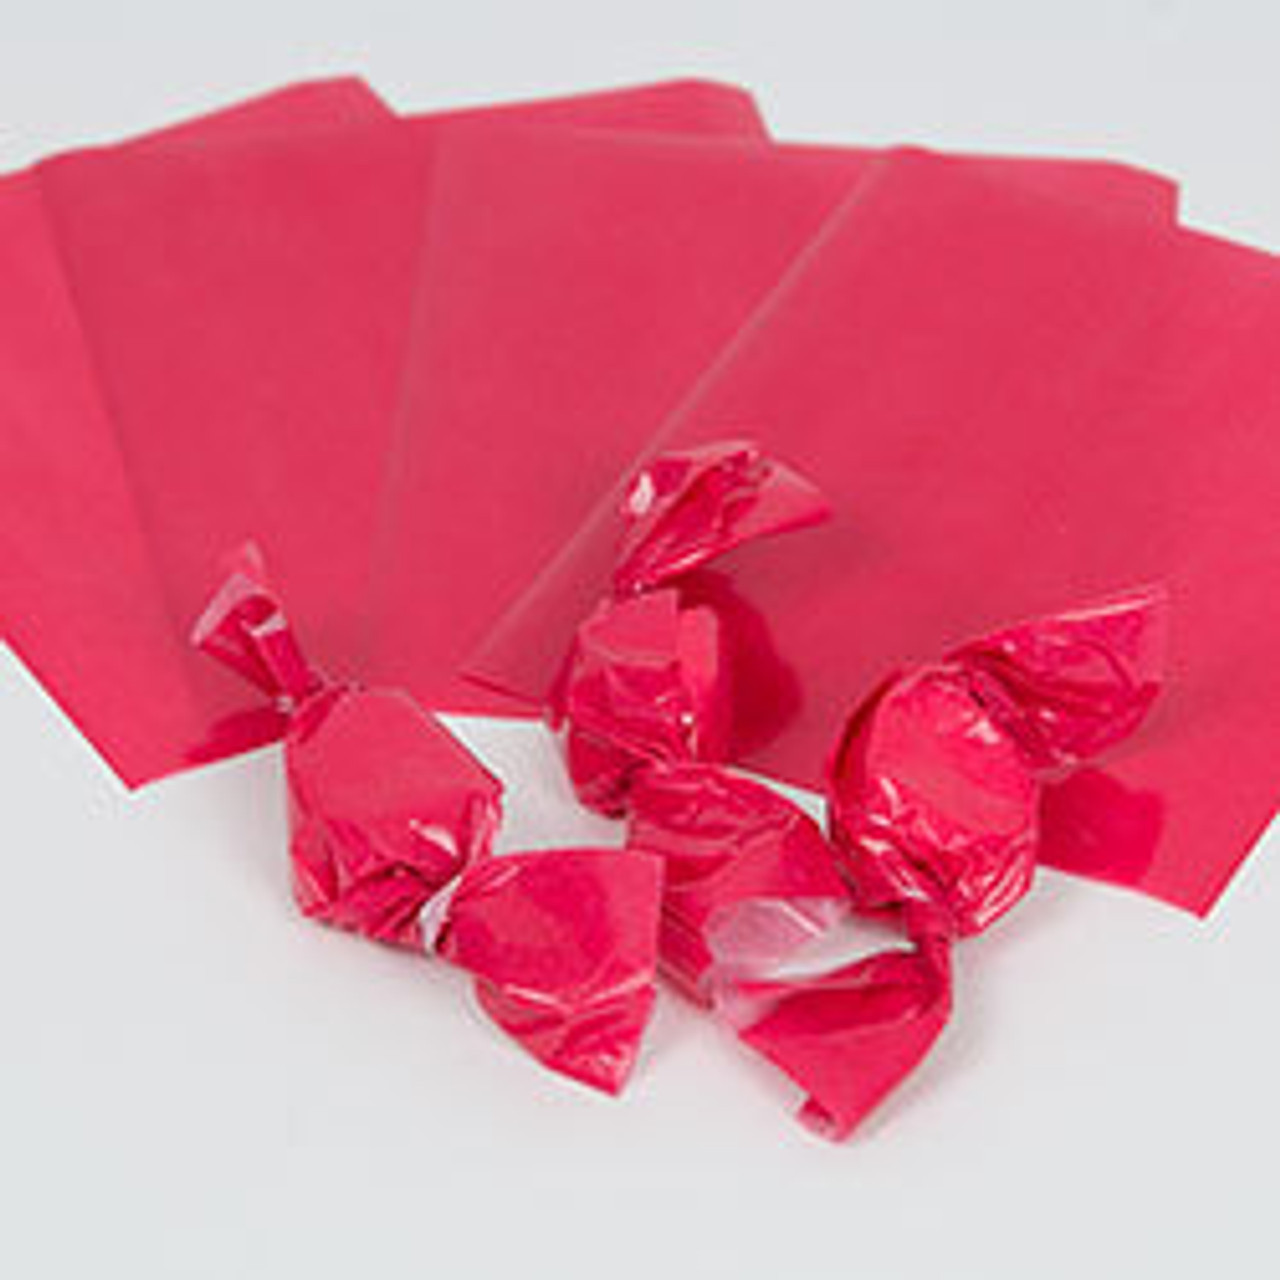 RED WRAPPERS